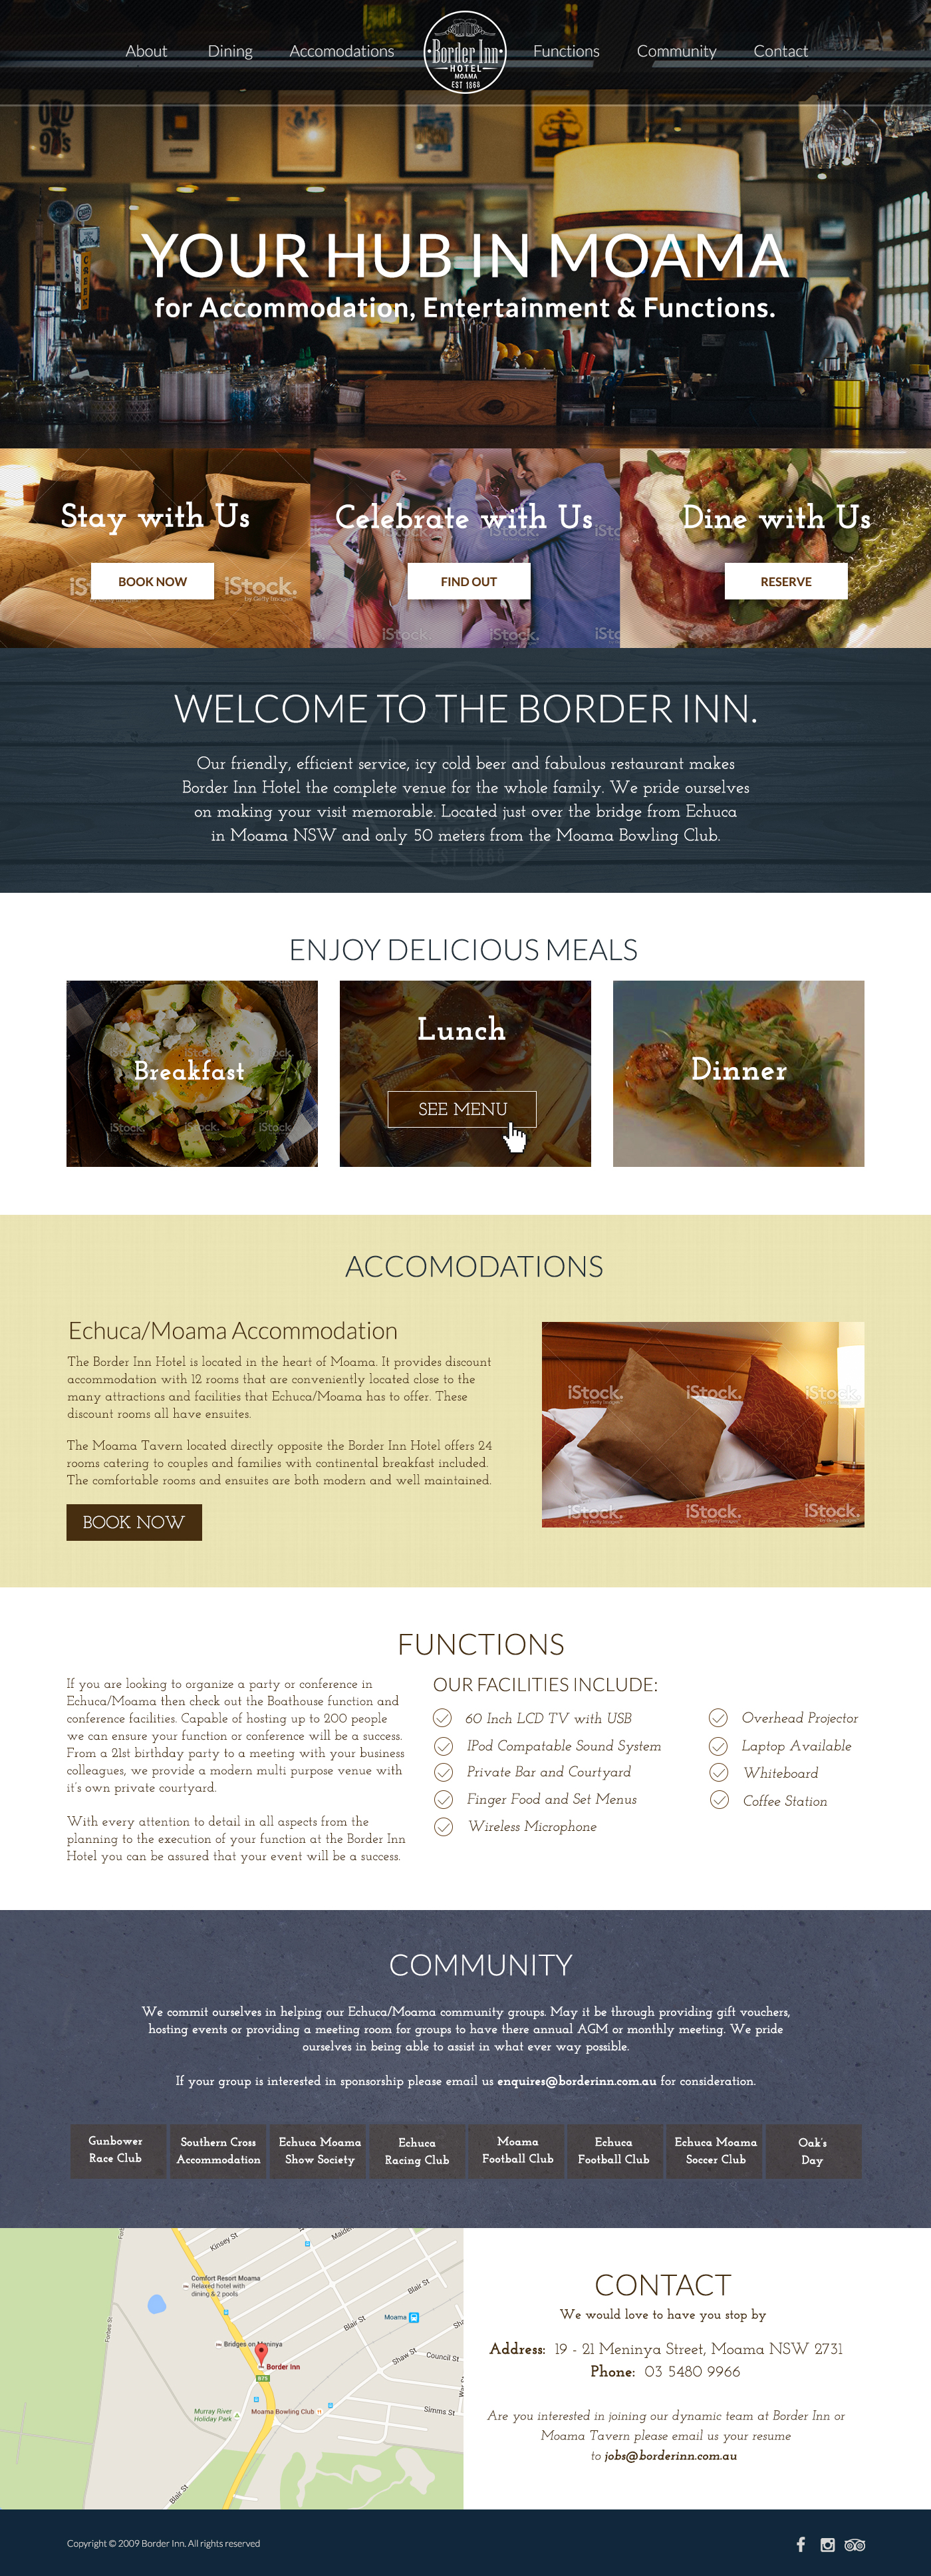 Border Inn Homepage Design